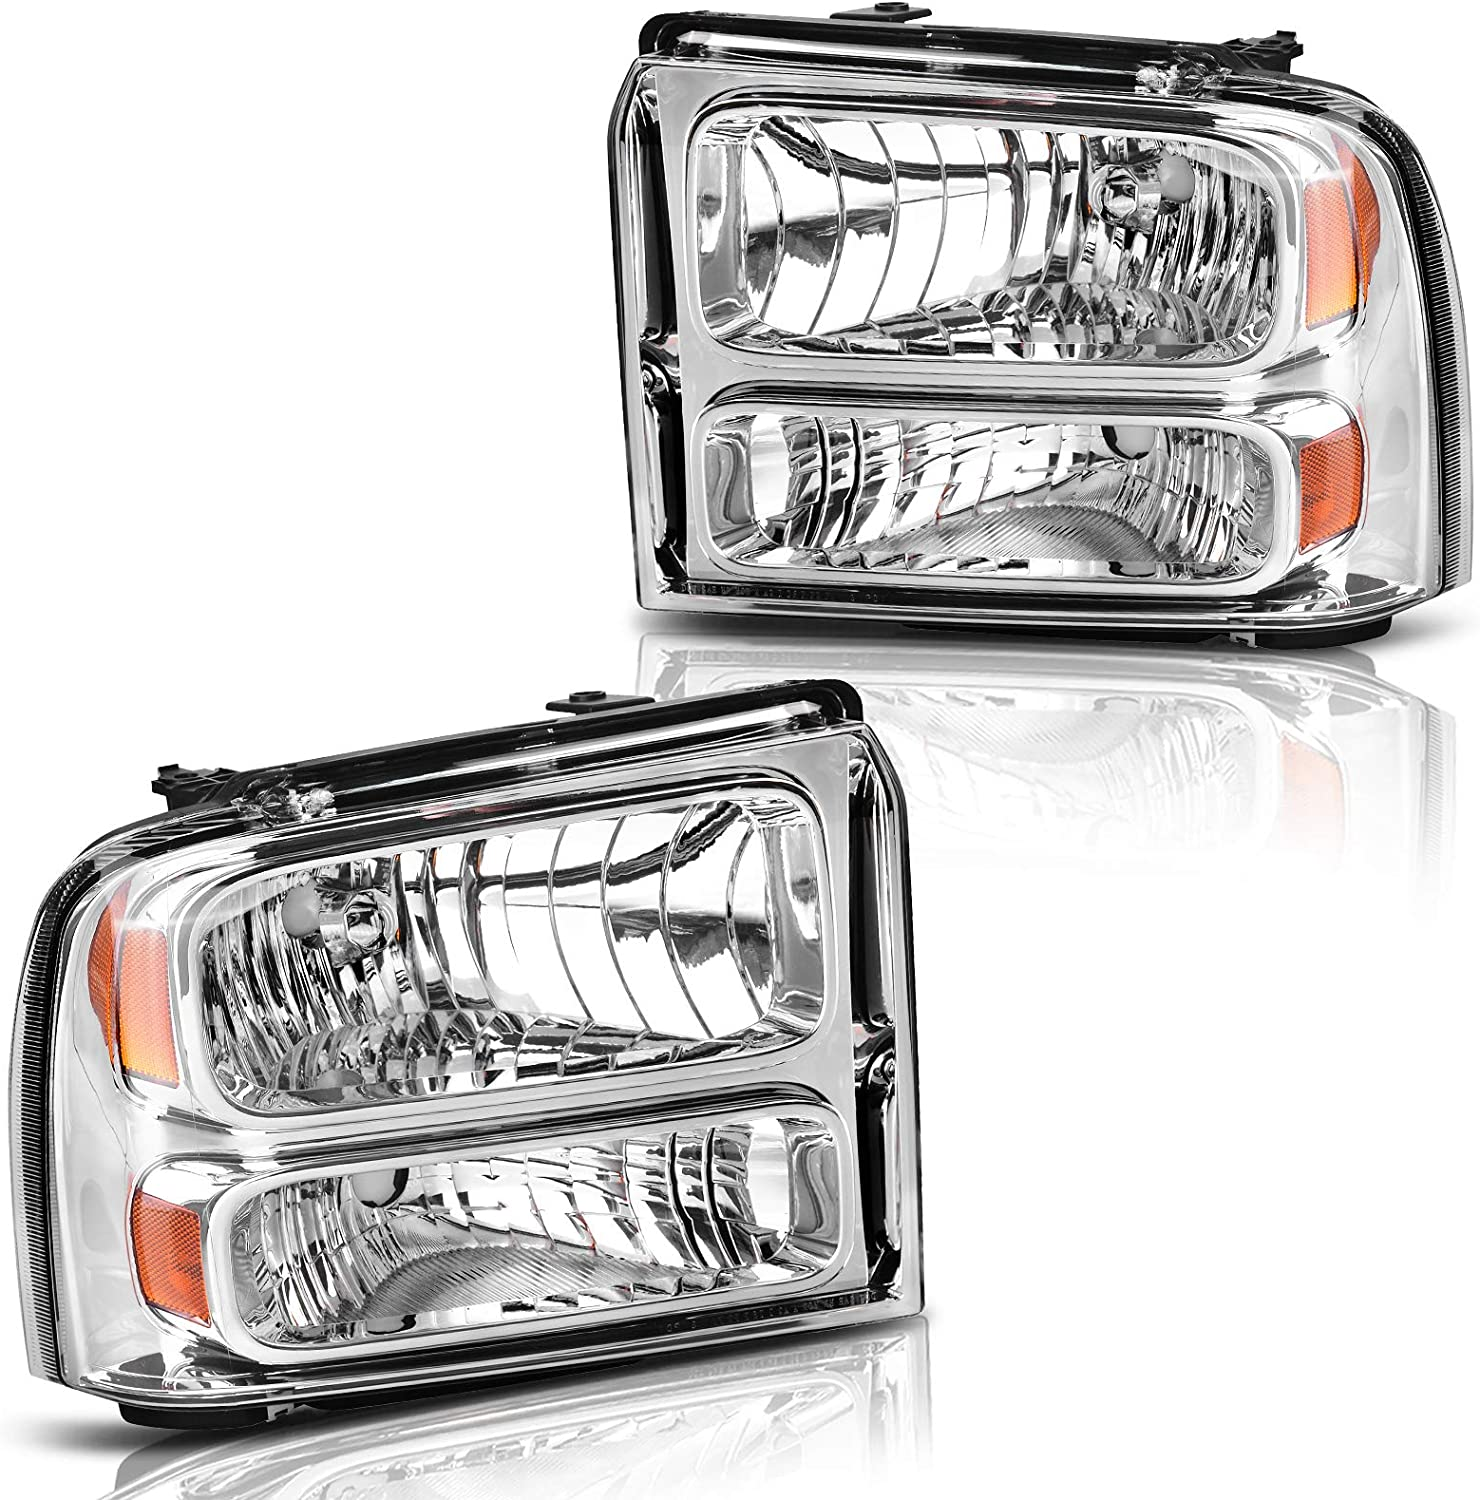 Driver and Passenger Side LBRST Headlight Assembly for Ford F250 F350 F450 F550 Super Duty 2005 2006 2007// for 05 ford Excursion Headlamp Replacement Chrome Housing Clear Lens